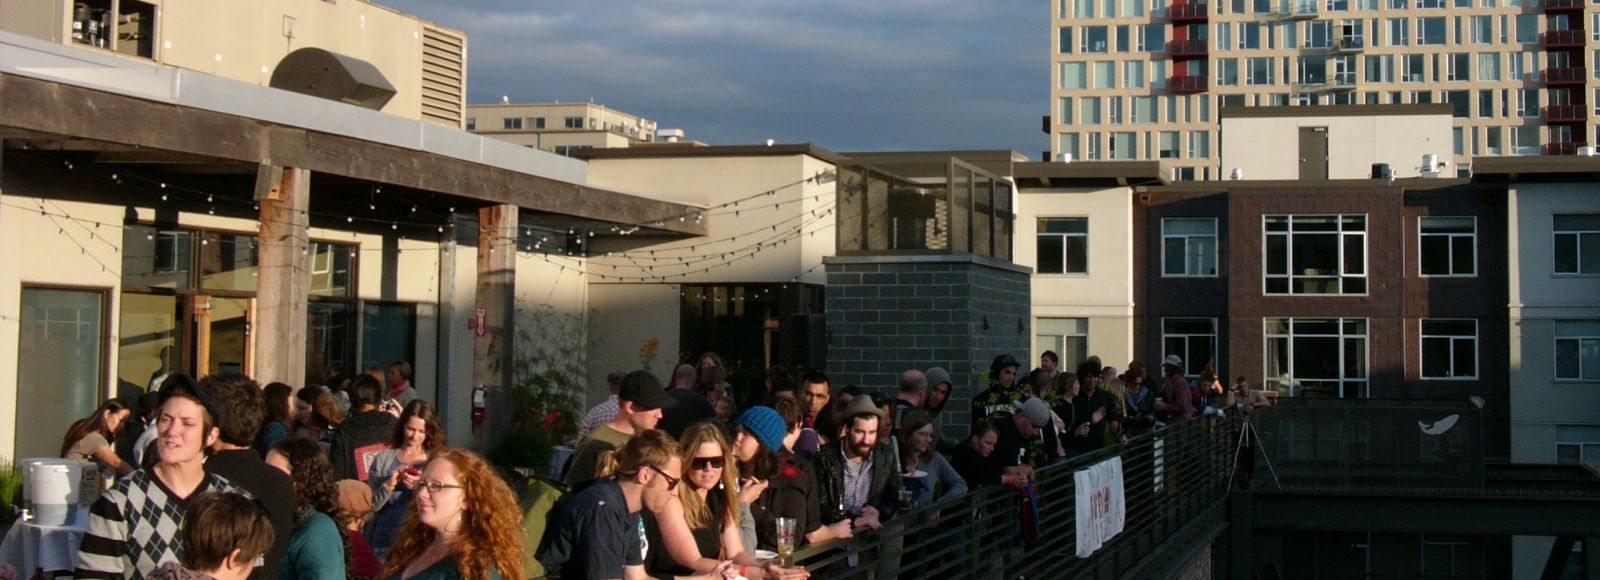 Smiling young people drinking and talking on the roof of a building in the city, sunny, portland, Ecotrust